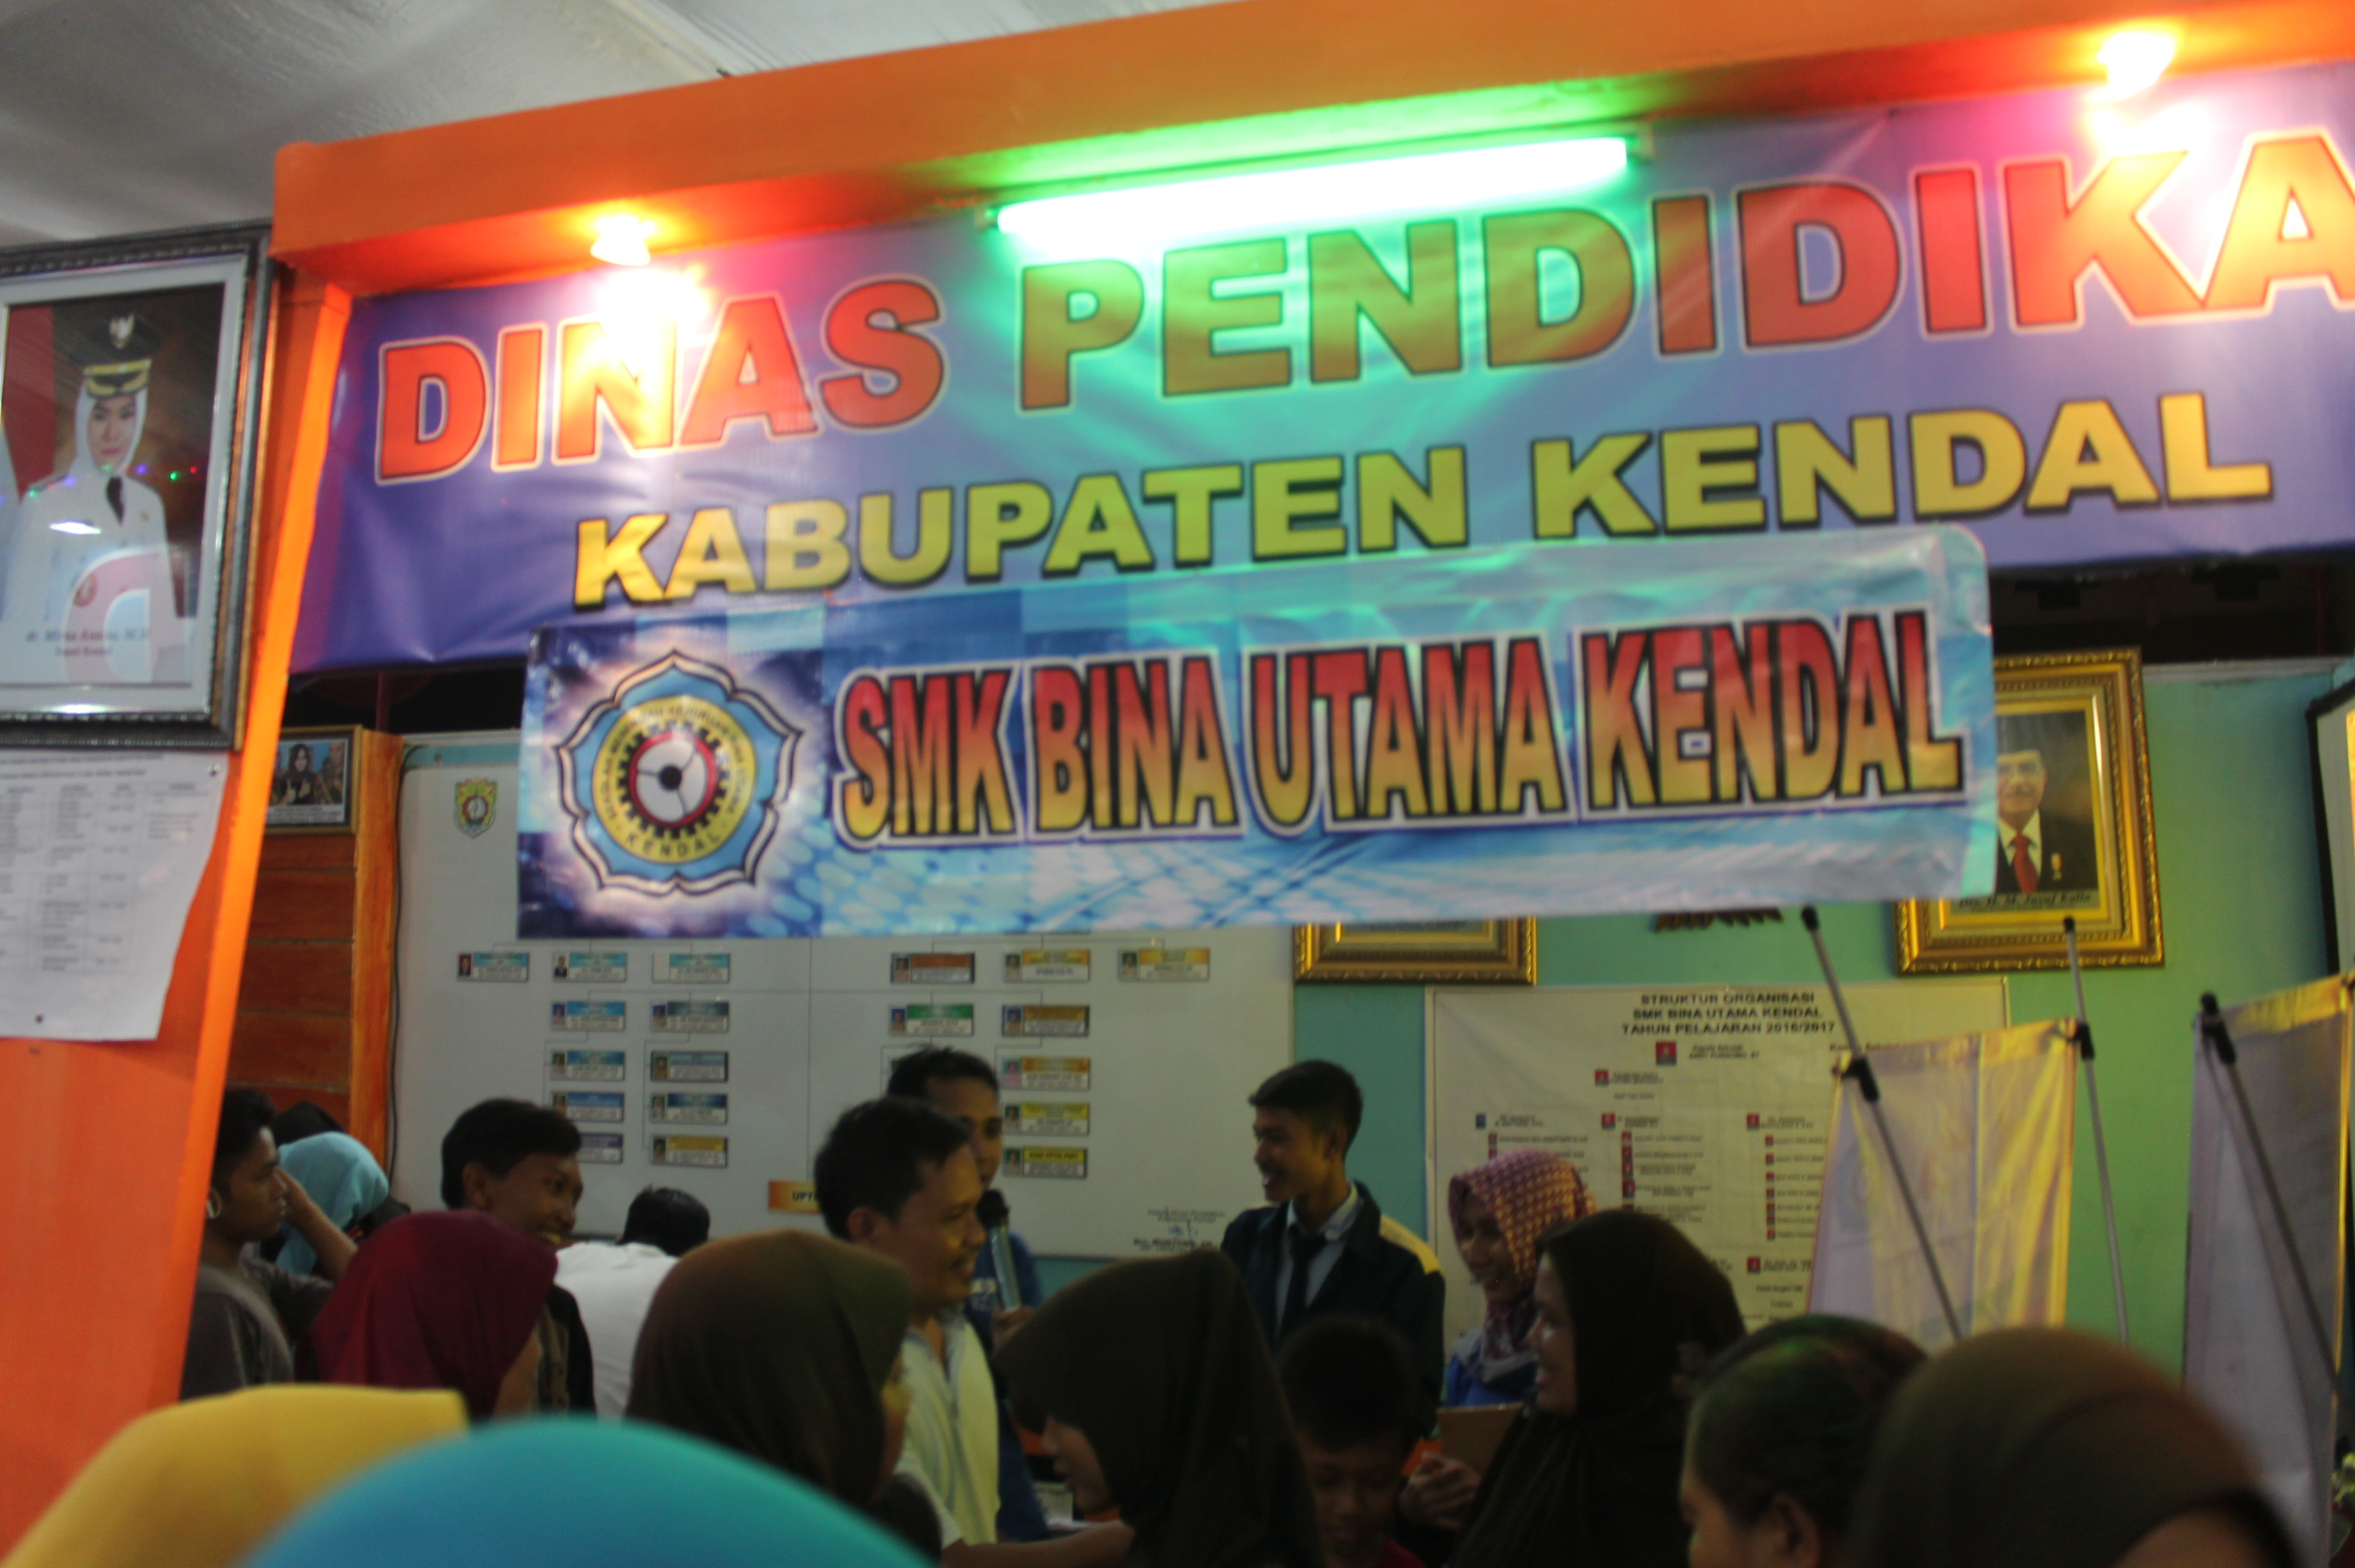 KENDAL EXPO